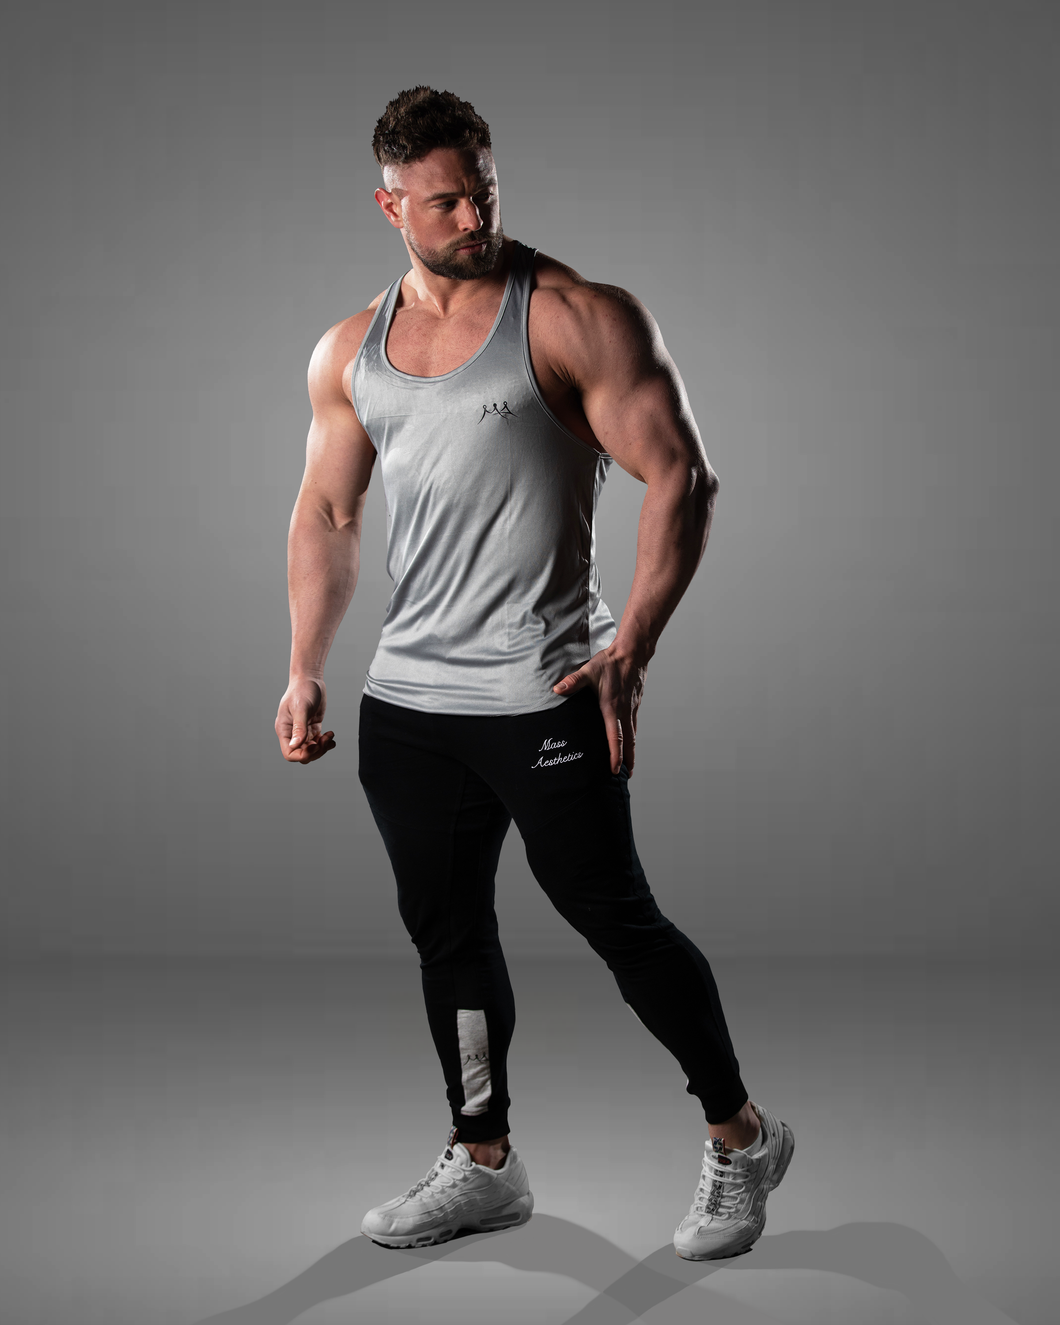 male wearing a grey stringer vest, perfect style